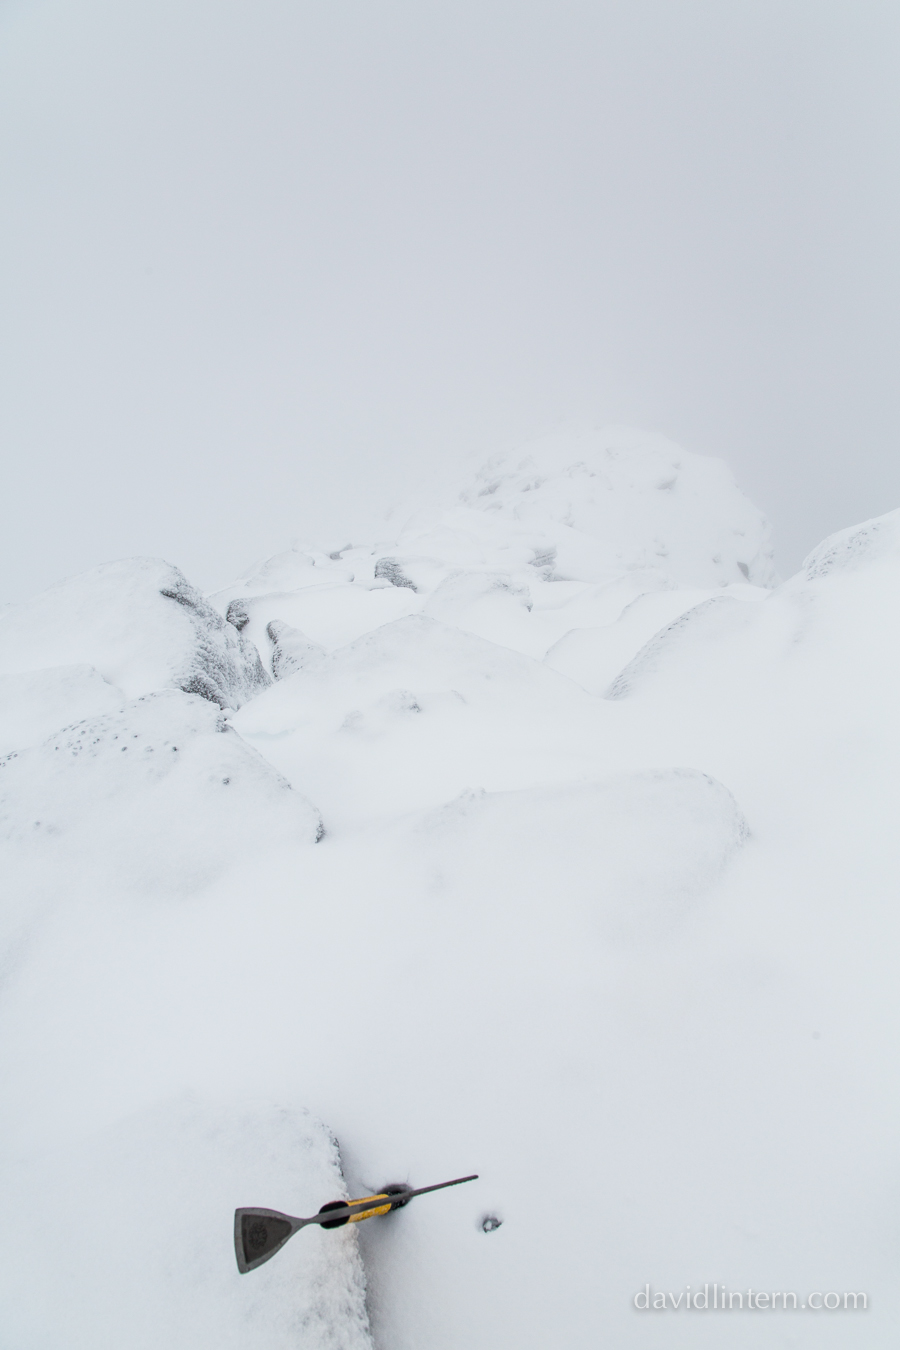 The start of a solo traverse of Beinn Eighe in mixed conditions: disconcerting - yes, photogenic - not really.